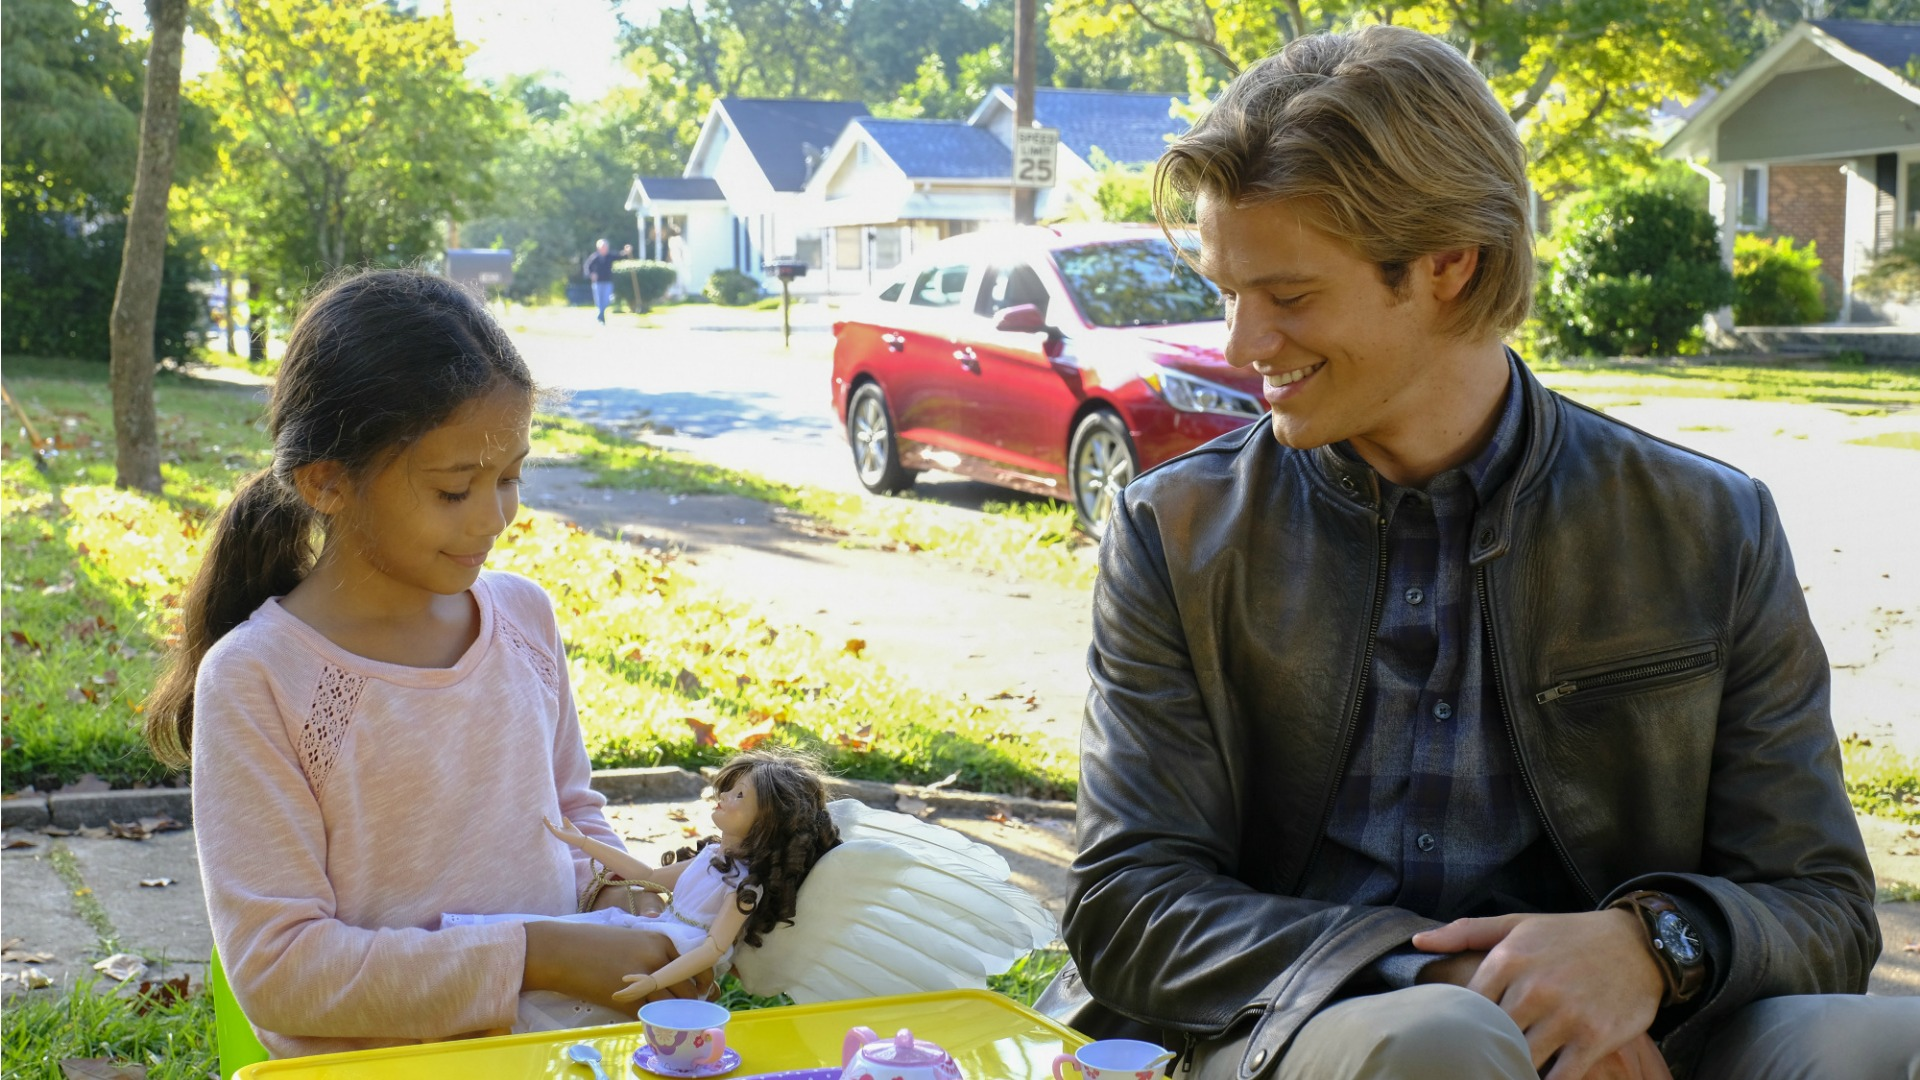 MacGyver speaks with an adorable new friend.